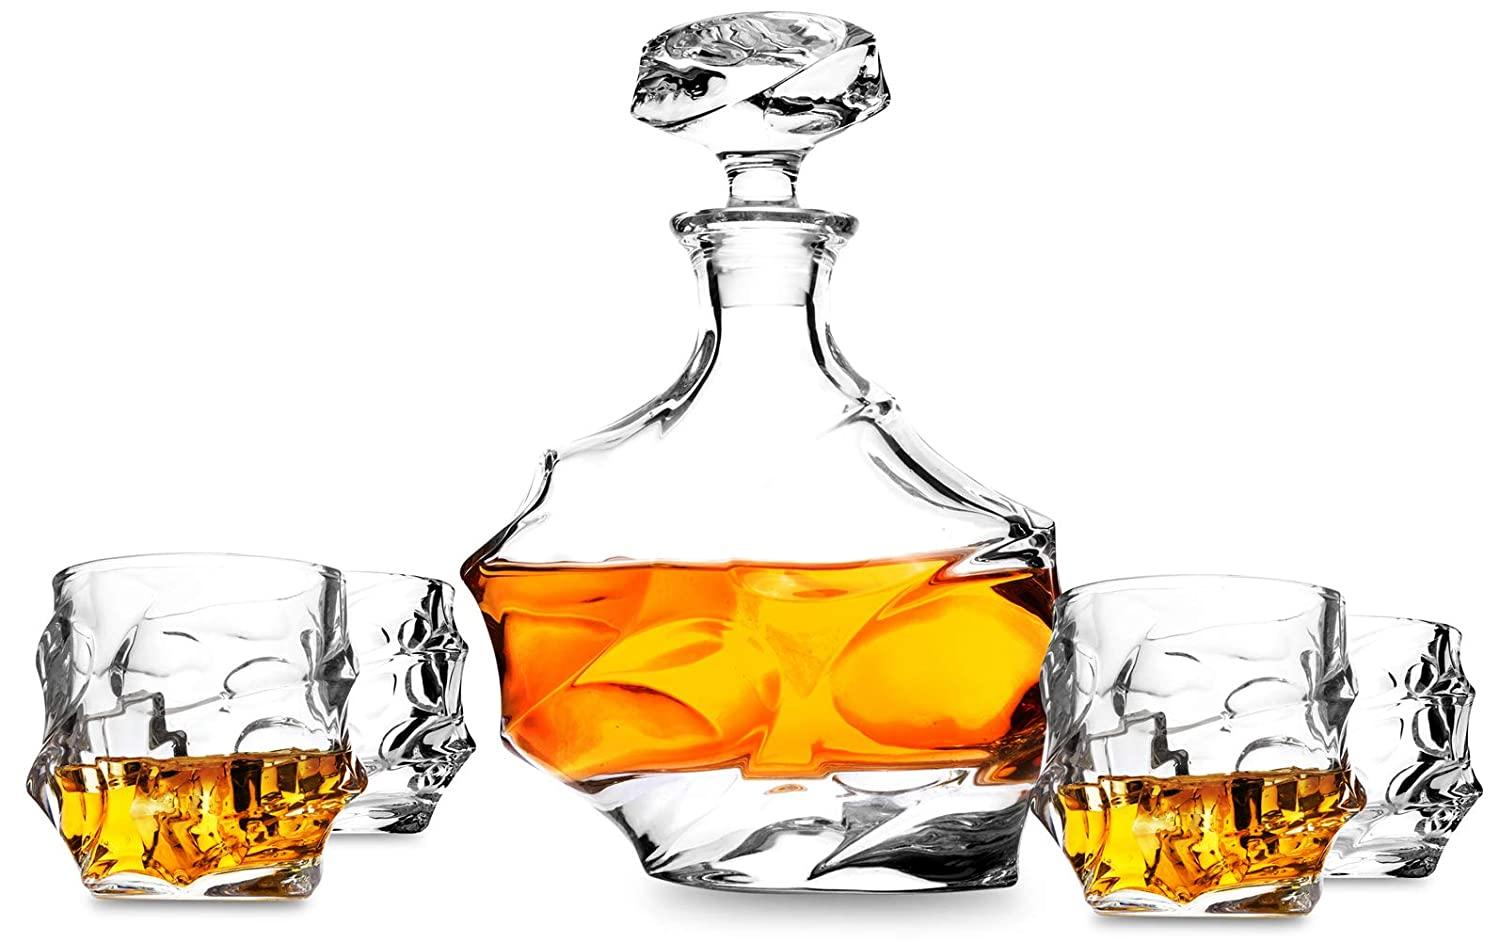 5-Piece Emperor Lead Free Crystal Whiskey Decanter Set. KANARS Scotch Carafe with 4 Unique Old Fashioned Cocktail Glasses for Bourbon Tasting or Drinking